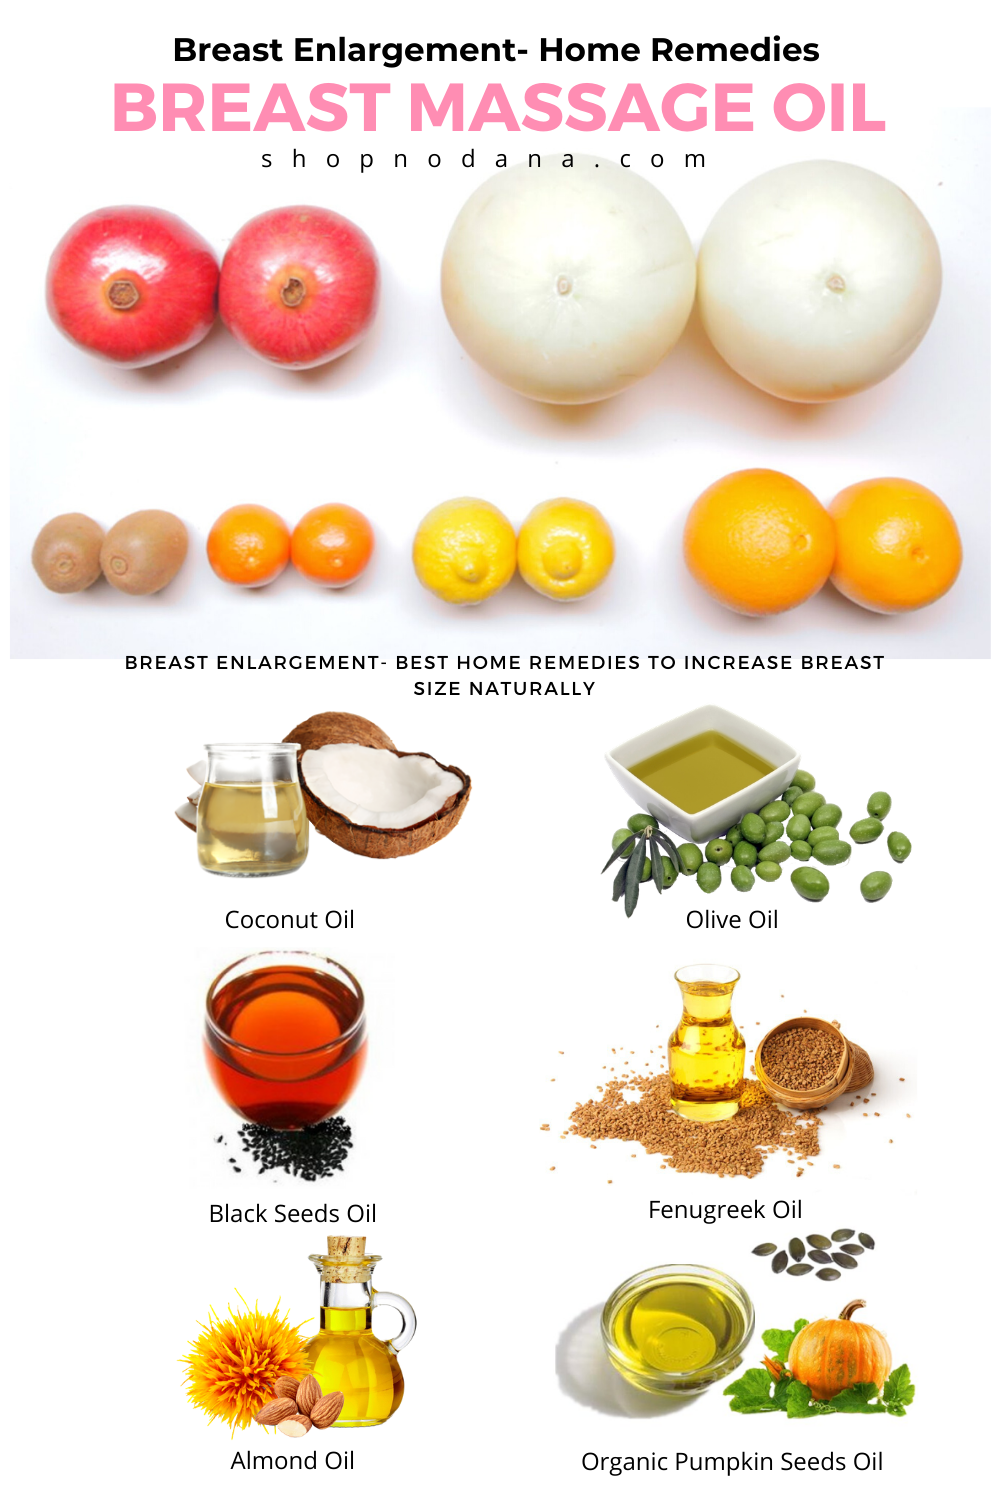 Breast Enlargement- Home Remedies- Breast Massage oil